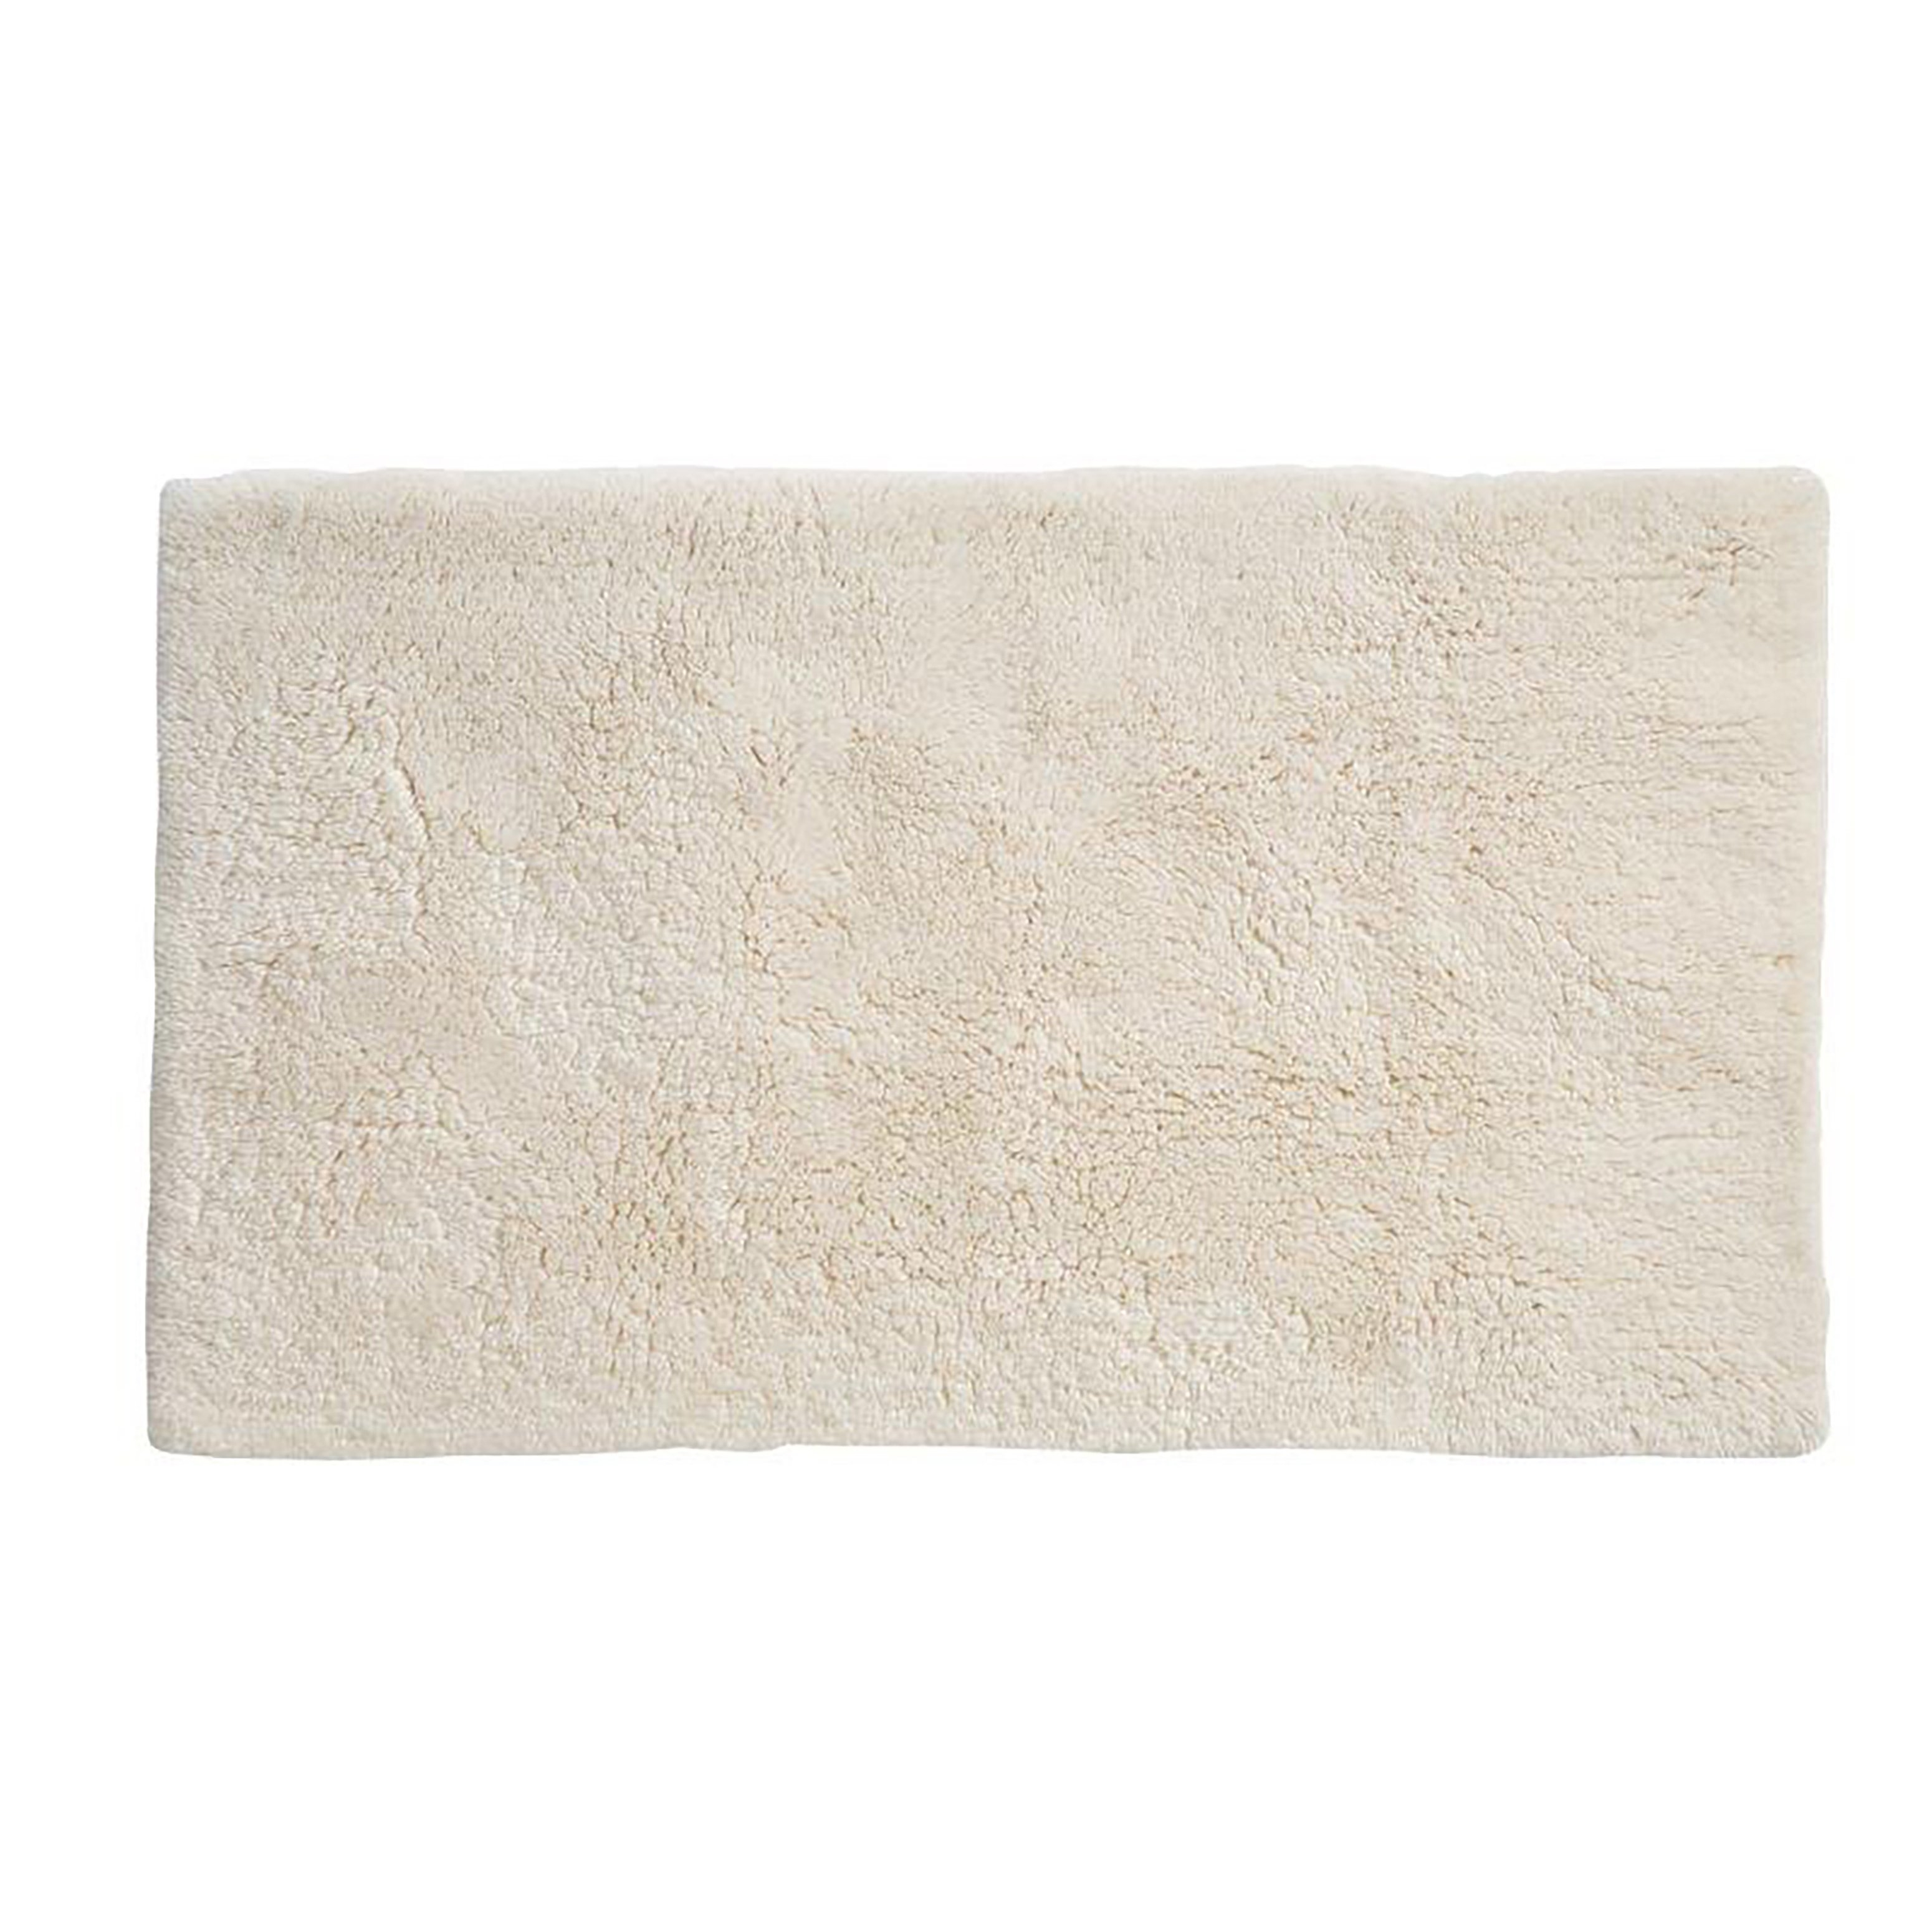 Cotton Bath Rugs With Latex Backing